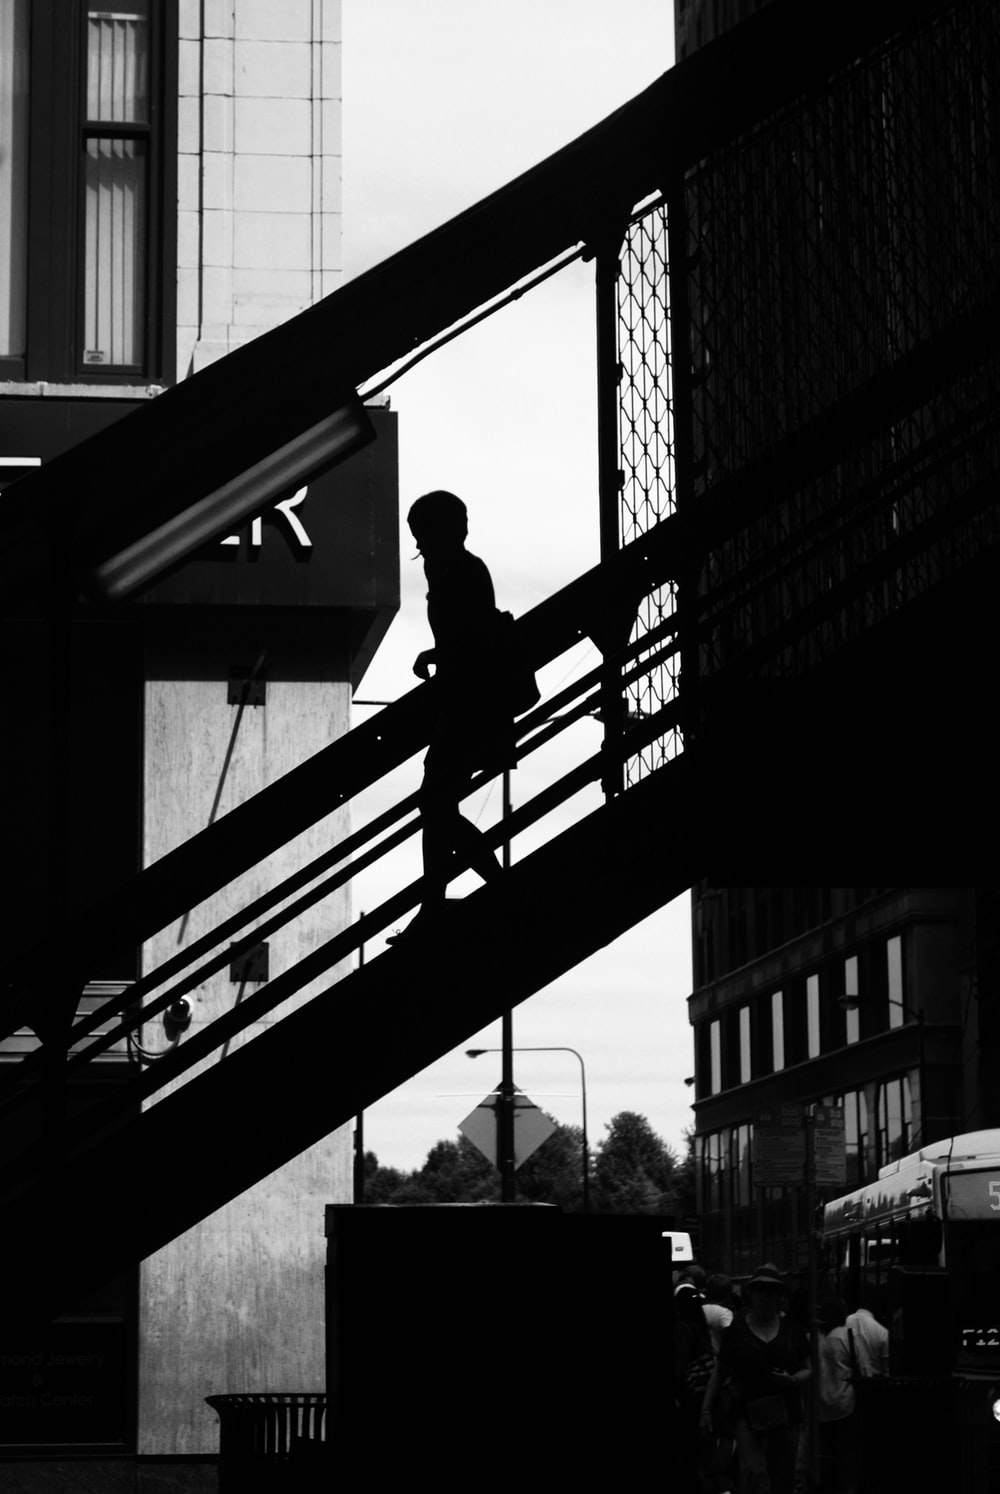 silhouette photo of a person walking down on stair